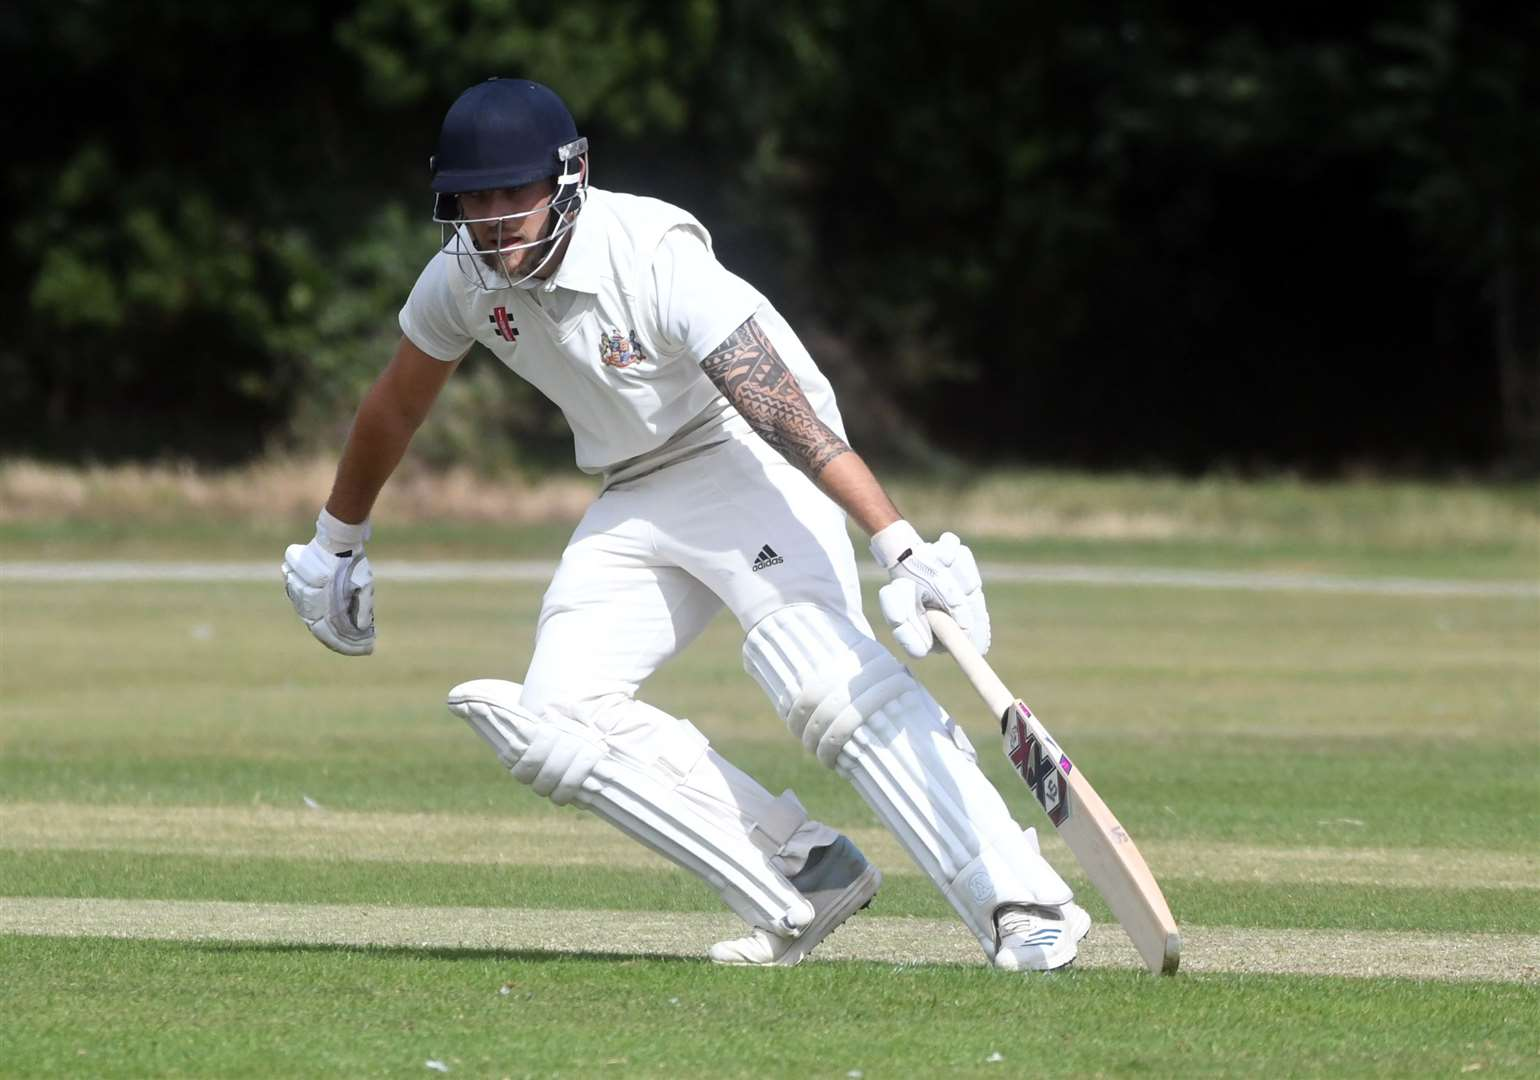 Fakenham v Stow cricket..Lloyd Marshall. (15990976)